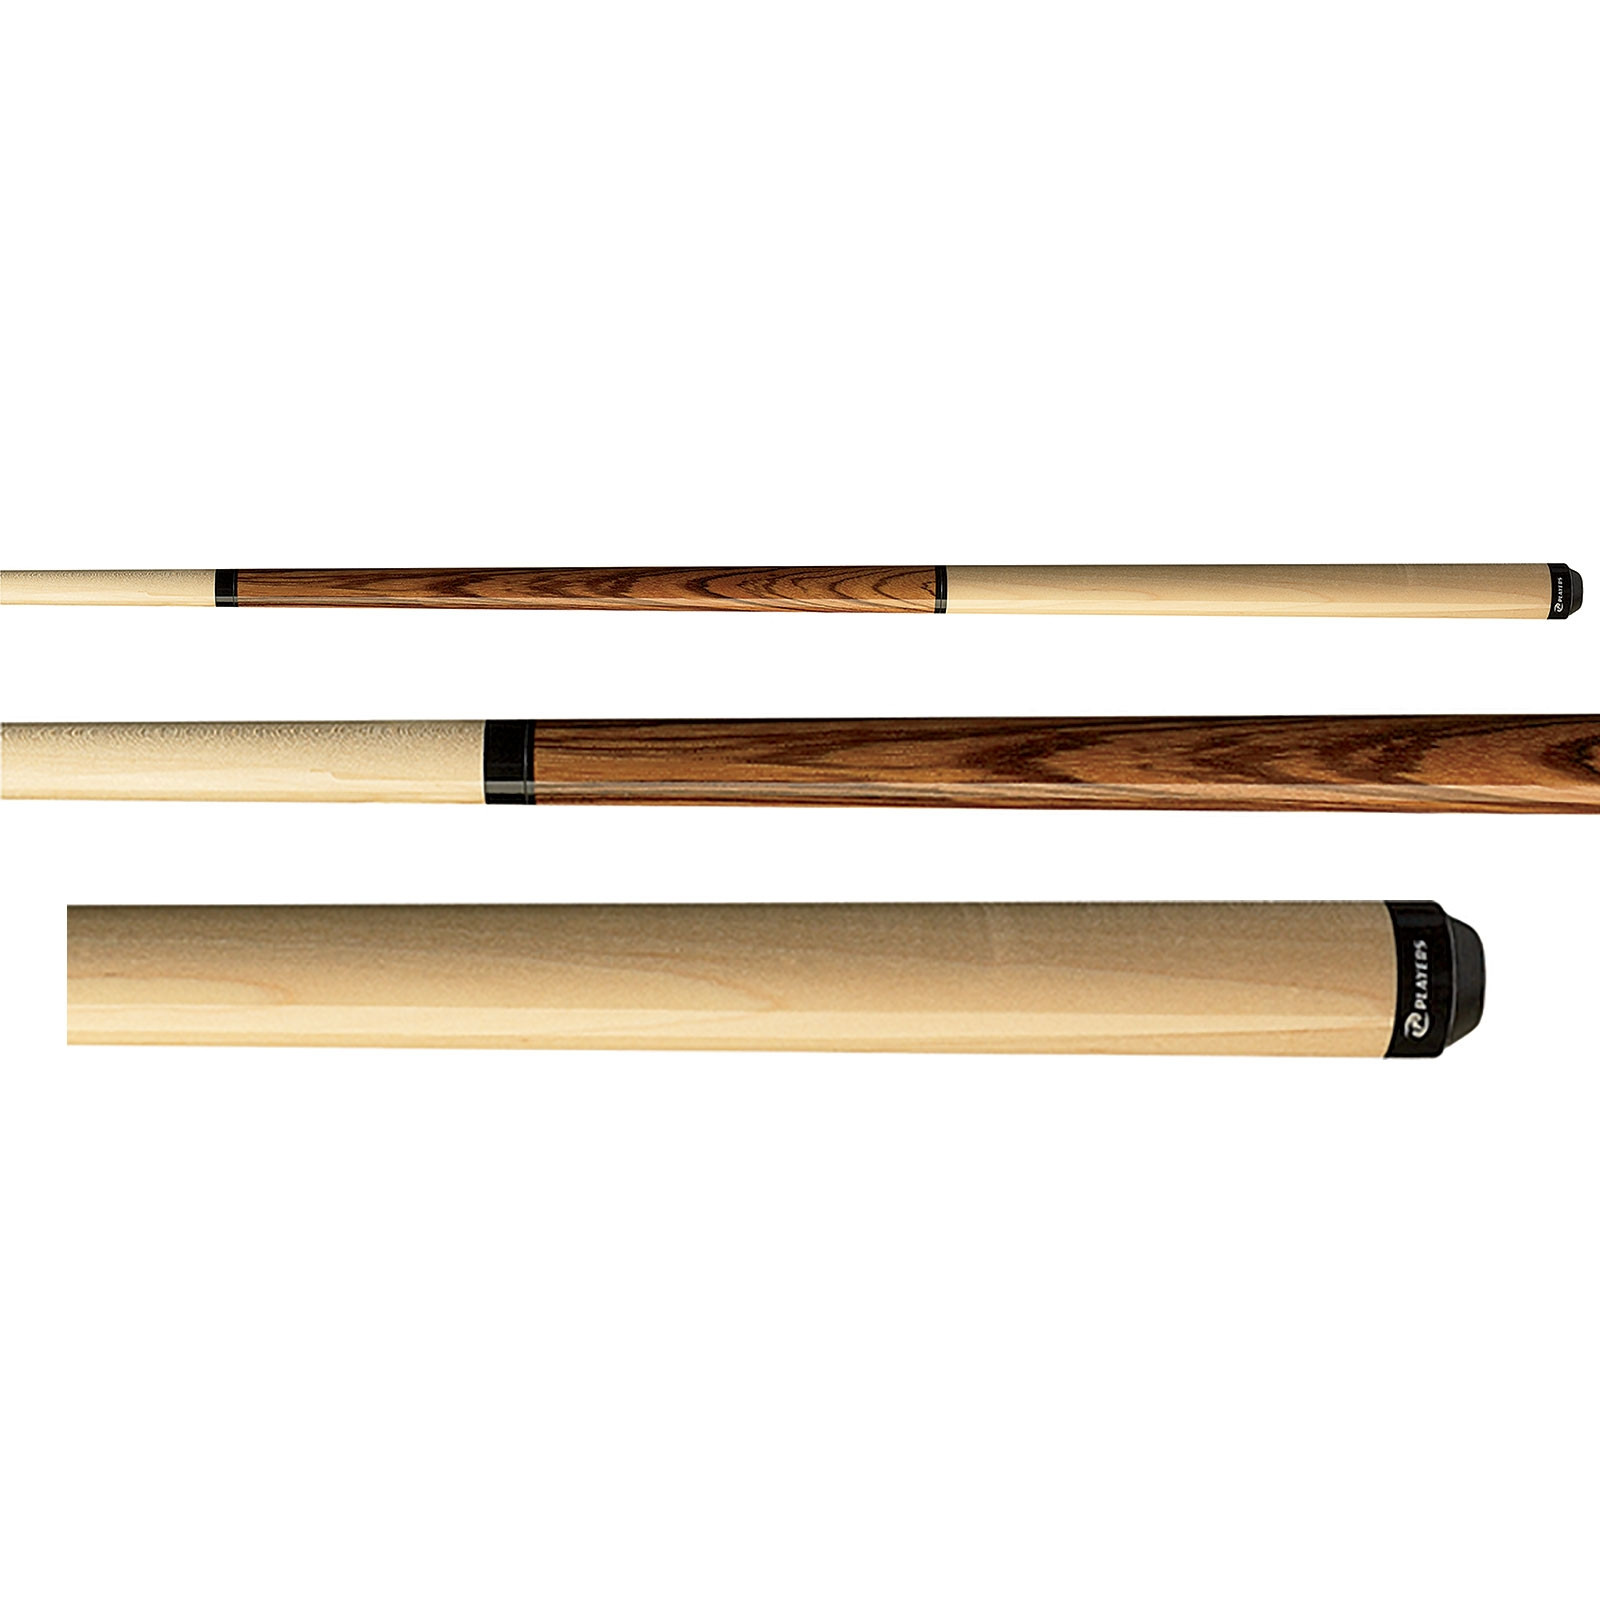 Players JB9 Maple and Zebrawood Jump Break Pool Cue Stick